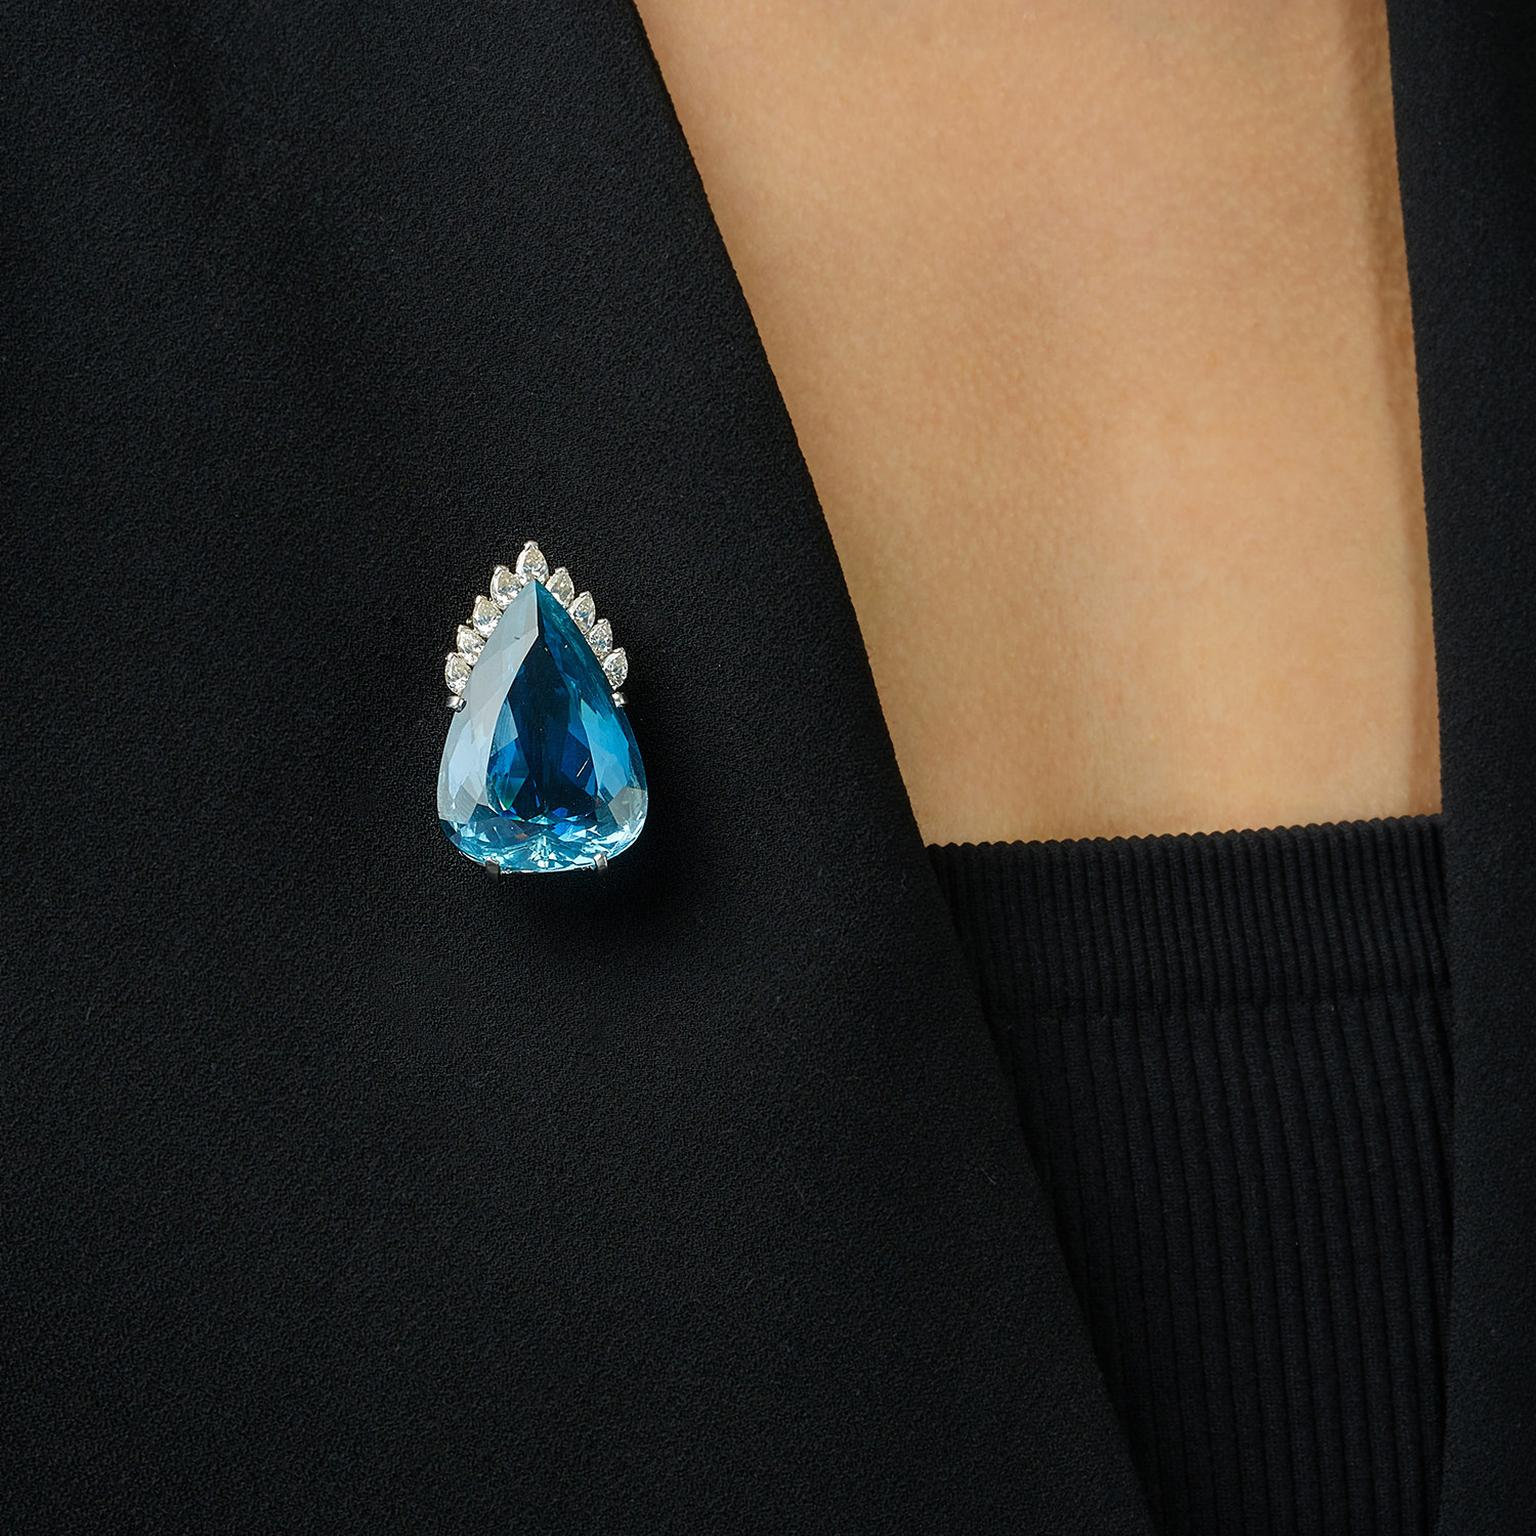 Lot 584 Aquamarine and diamonds brooch Phillips auction on model